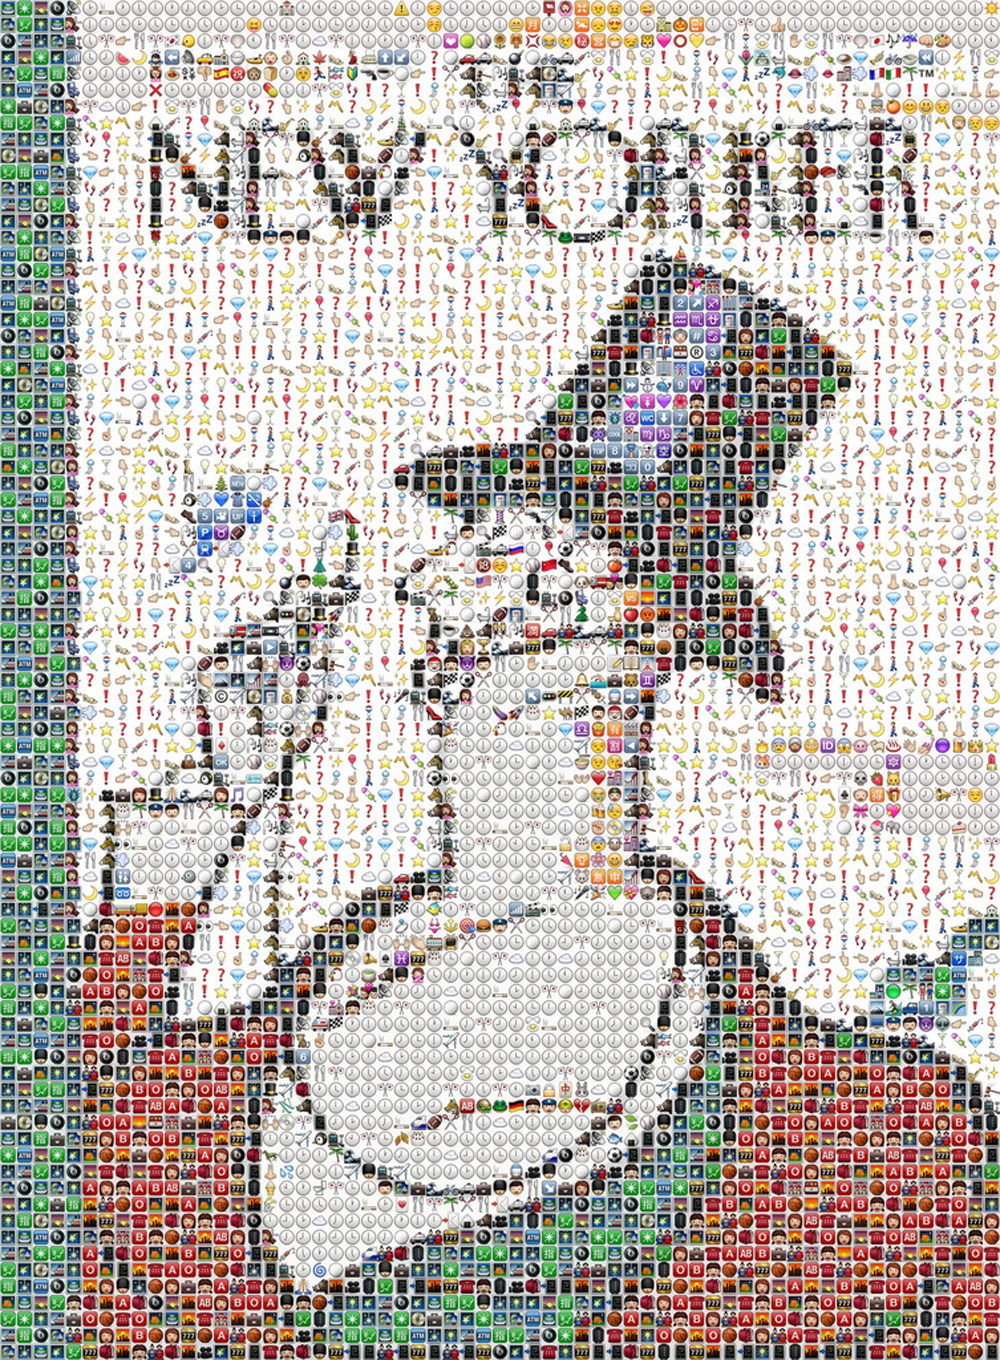 Fred Benenson's Emoji cover of The New Yorker